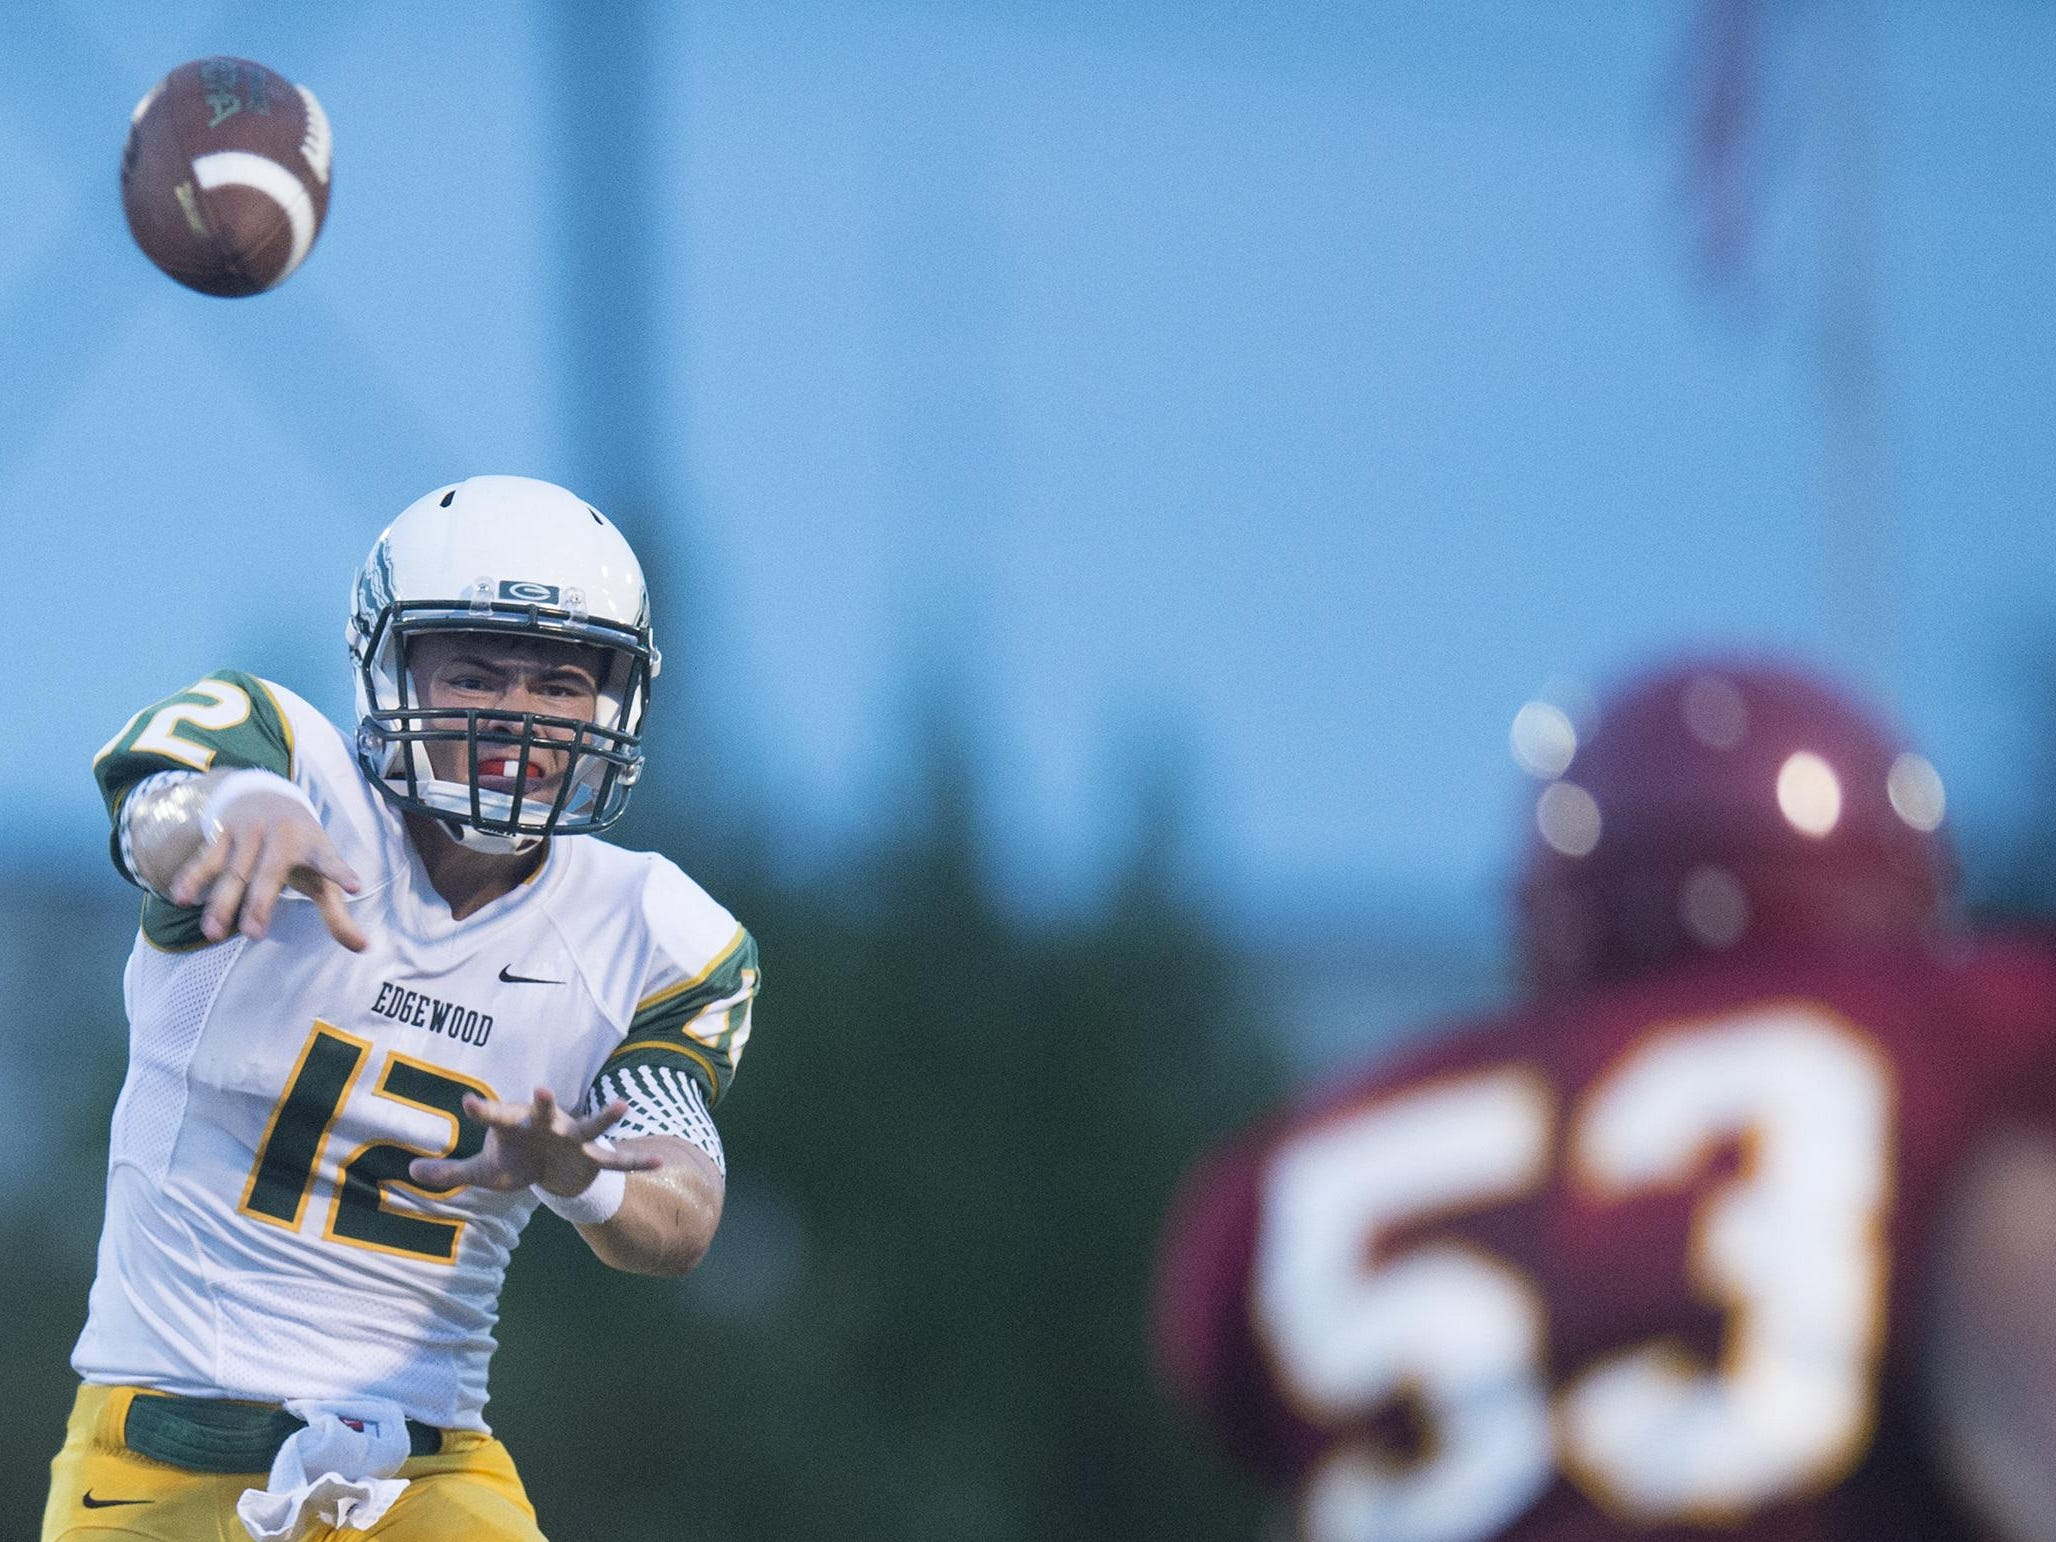 Nathan Rourke, shown in Edgewood's season opener on Aug. 20, threw for 297 yards and five touchdowns in the Wildcats' 67-0 win at Evangel Christian on Friday.